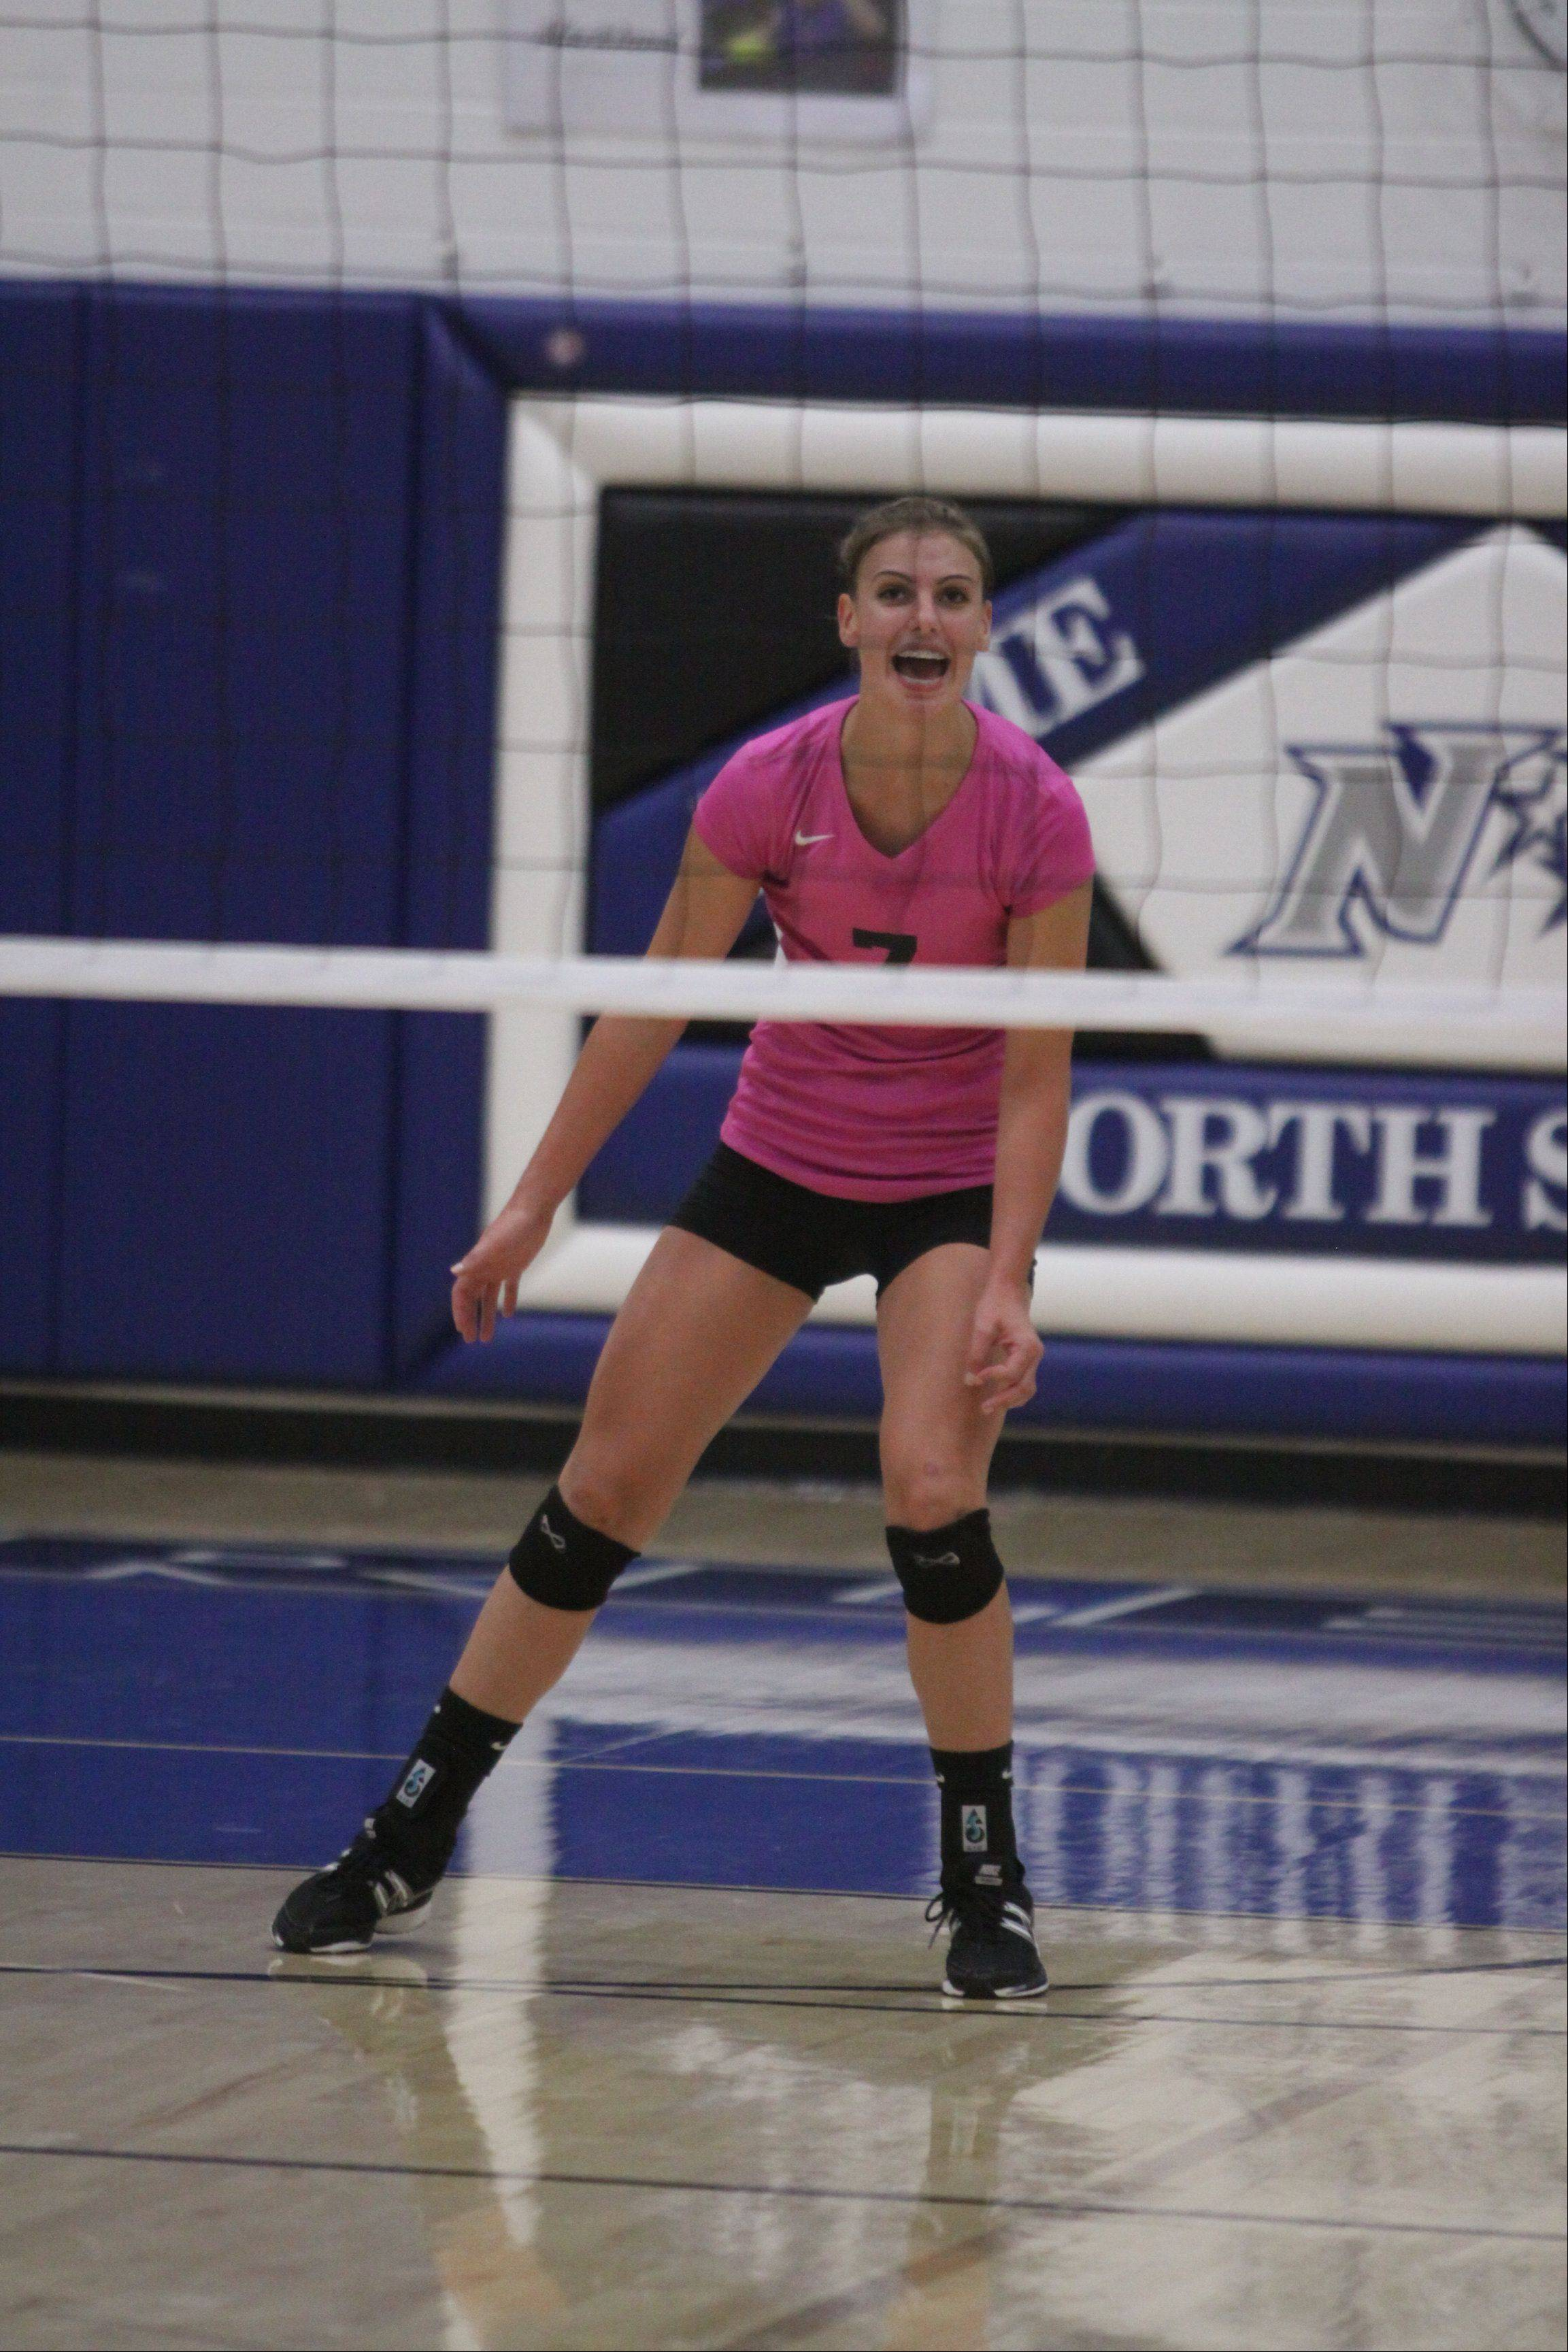 St. Charles North's Taylor Krage